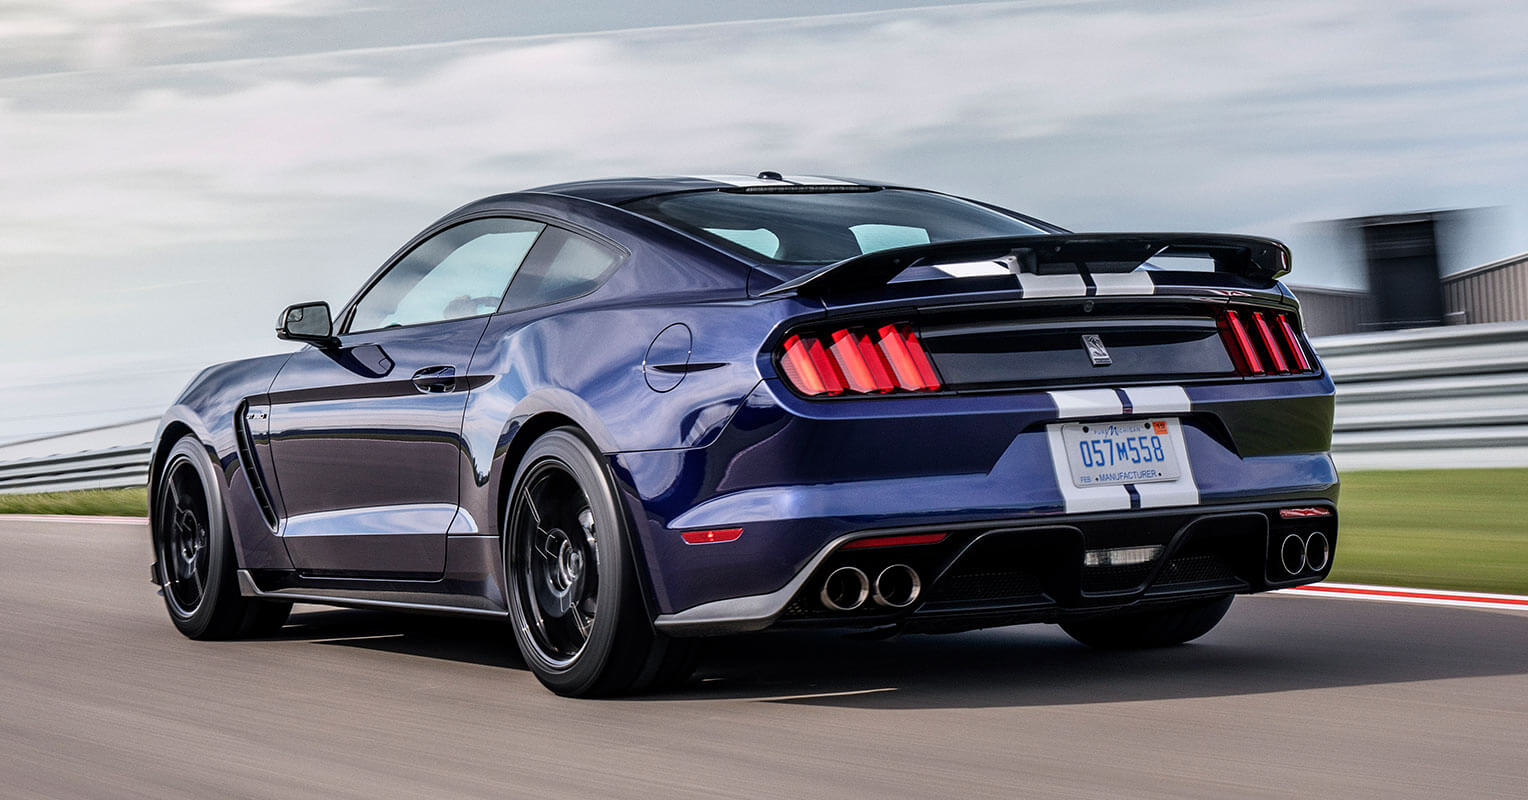 Ford Mustang Shelby GT350 2019 trasera